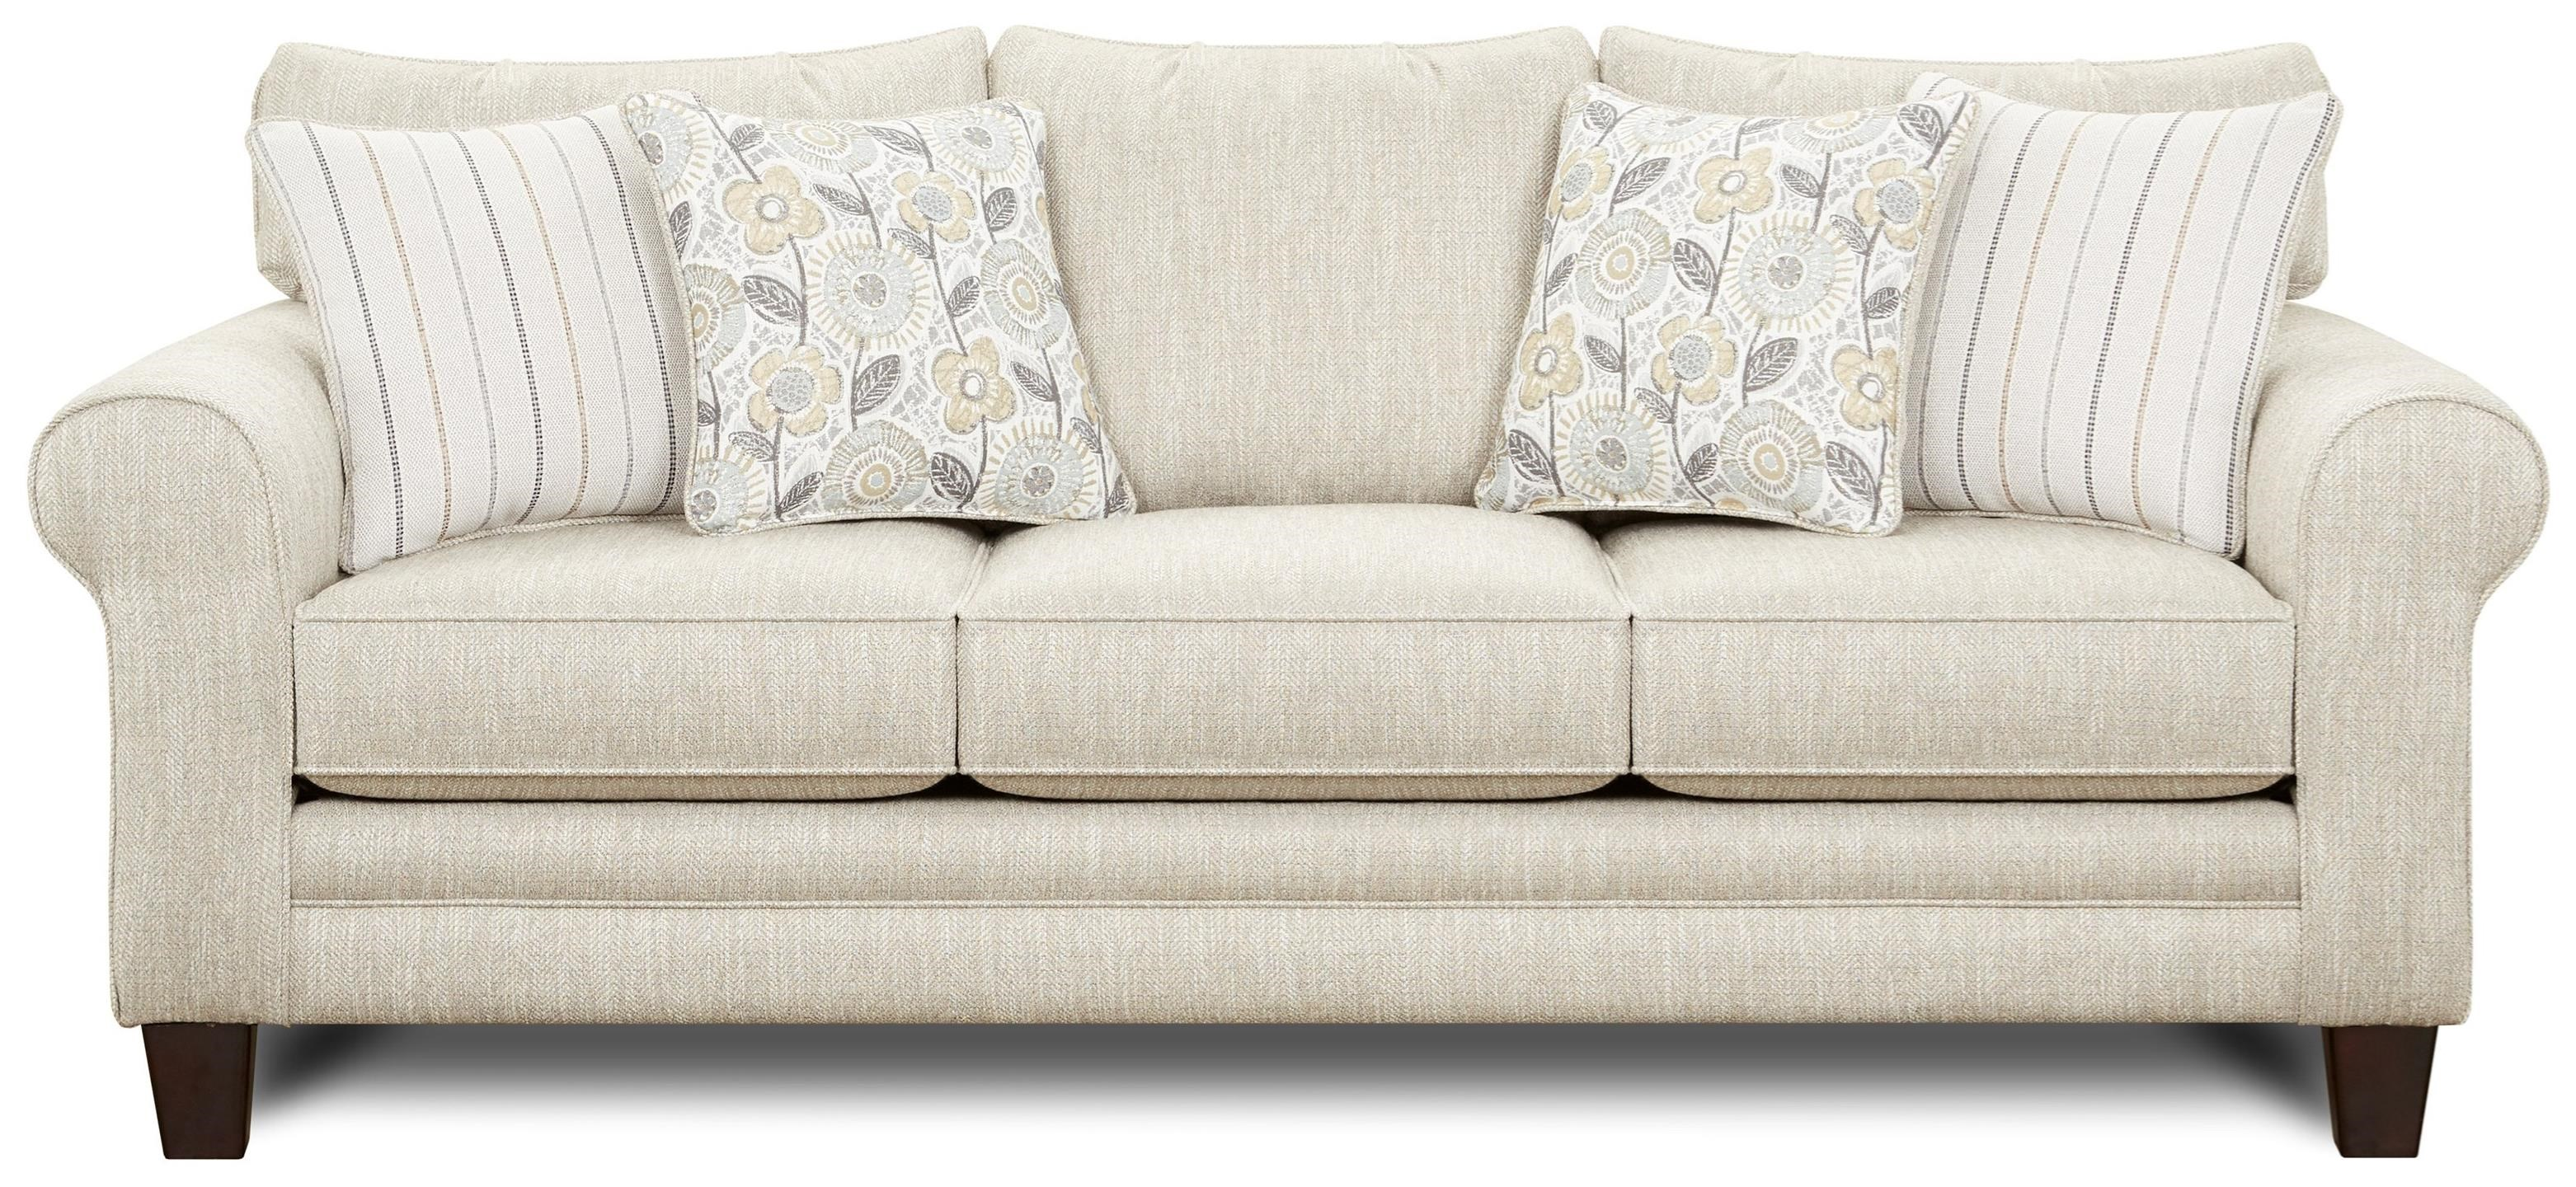 1140 Sofa by Fusion Furniture at Wilcox Furniture